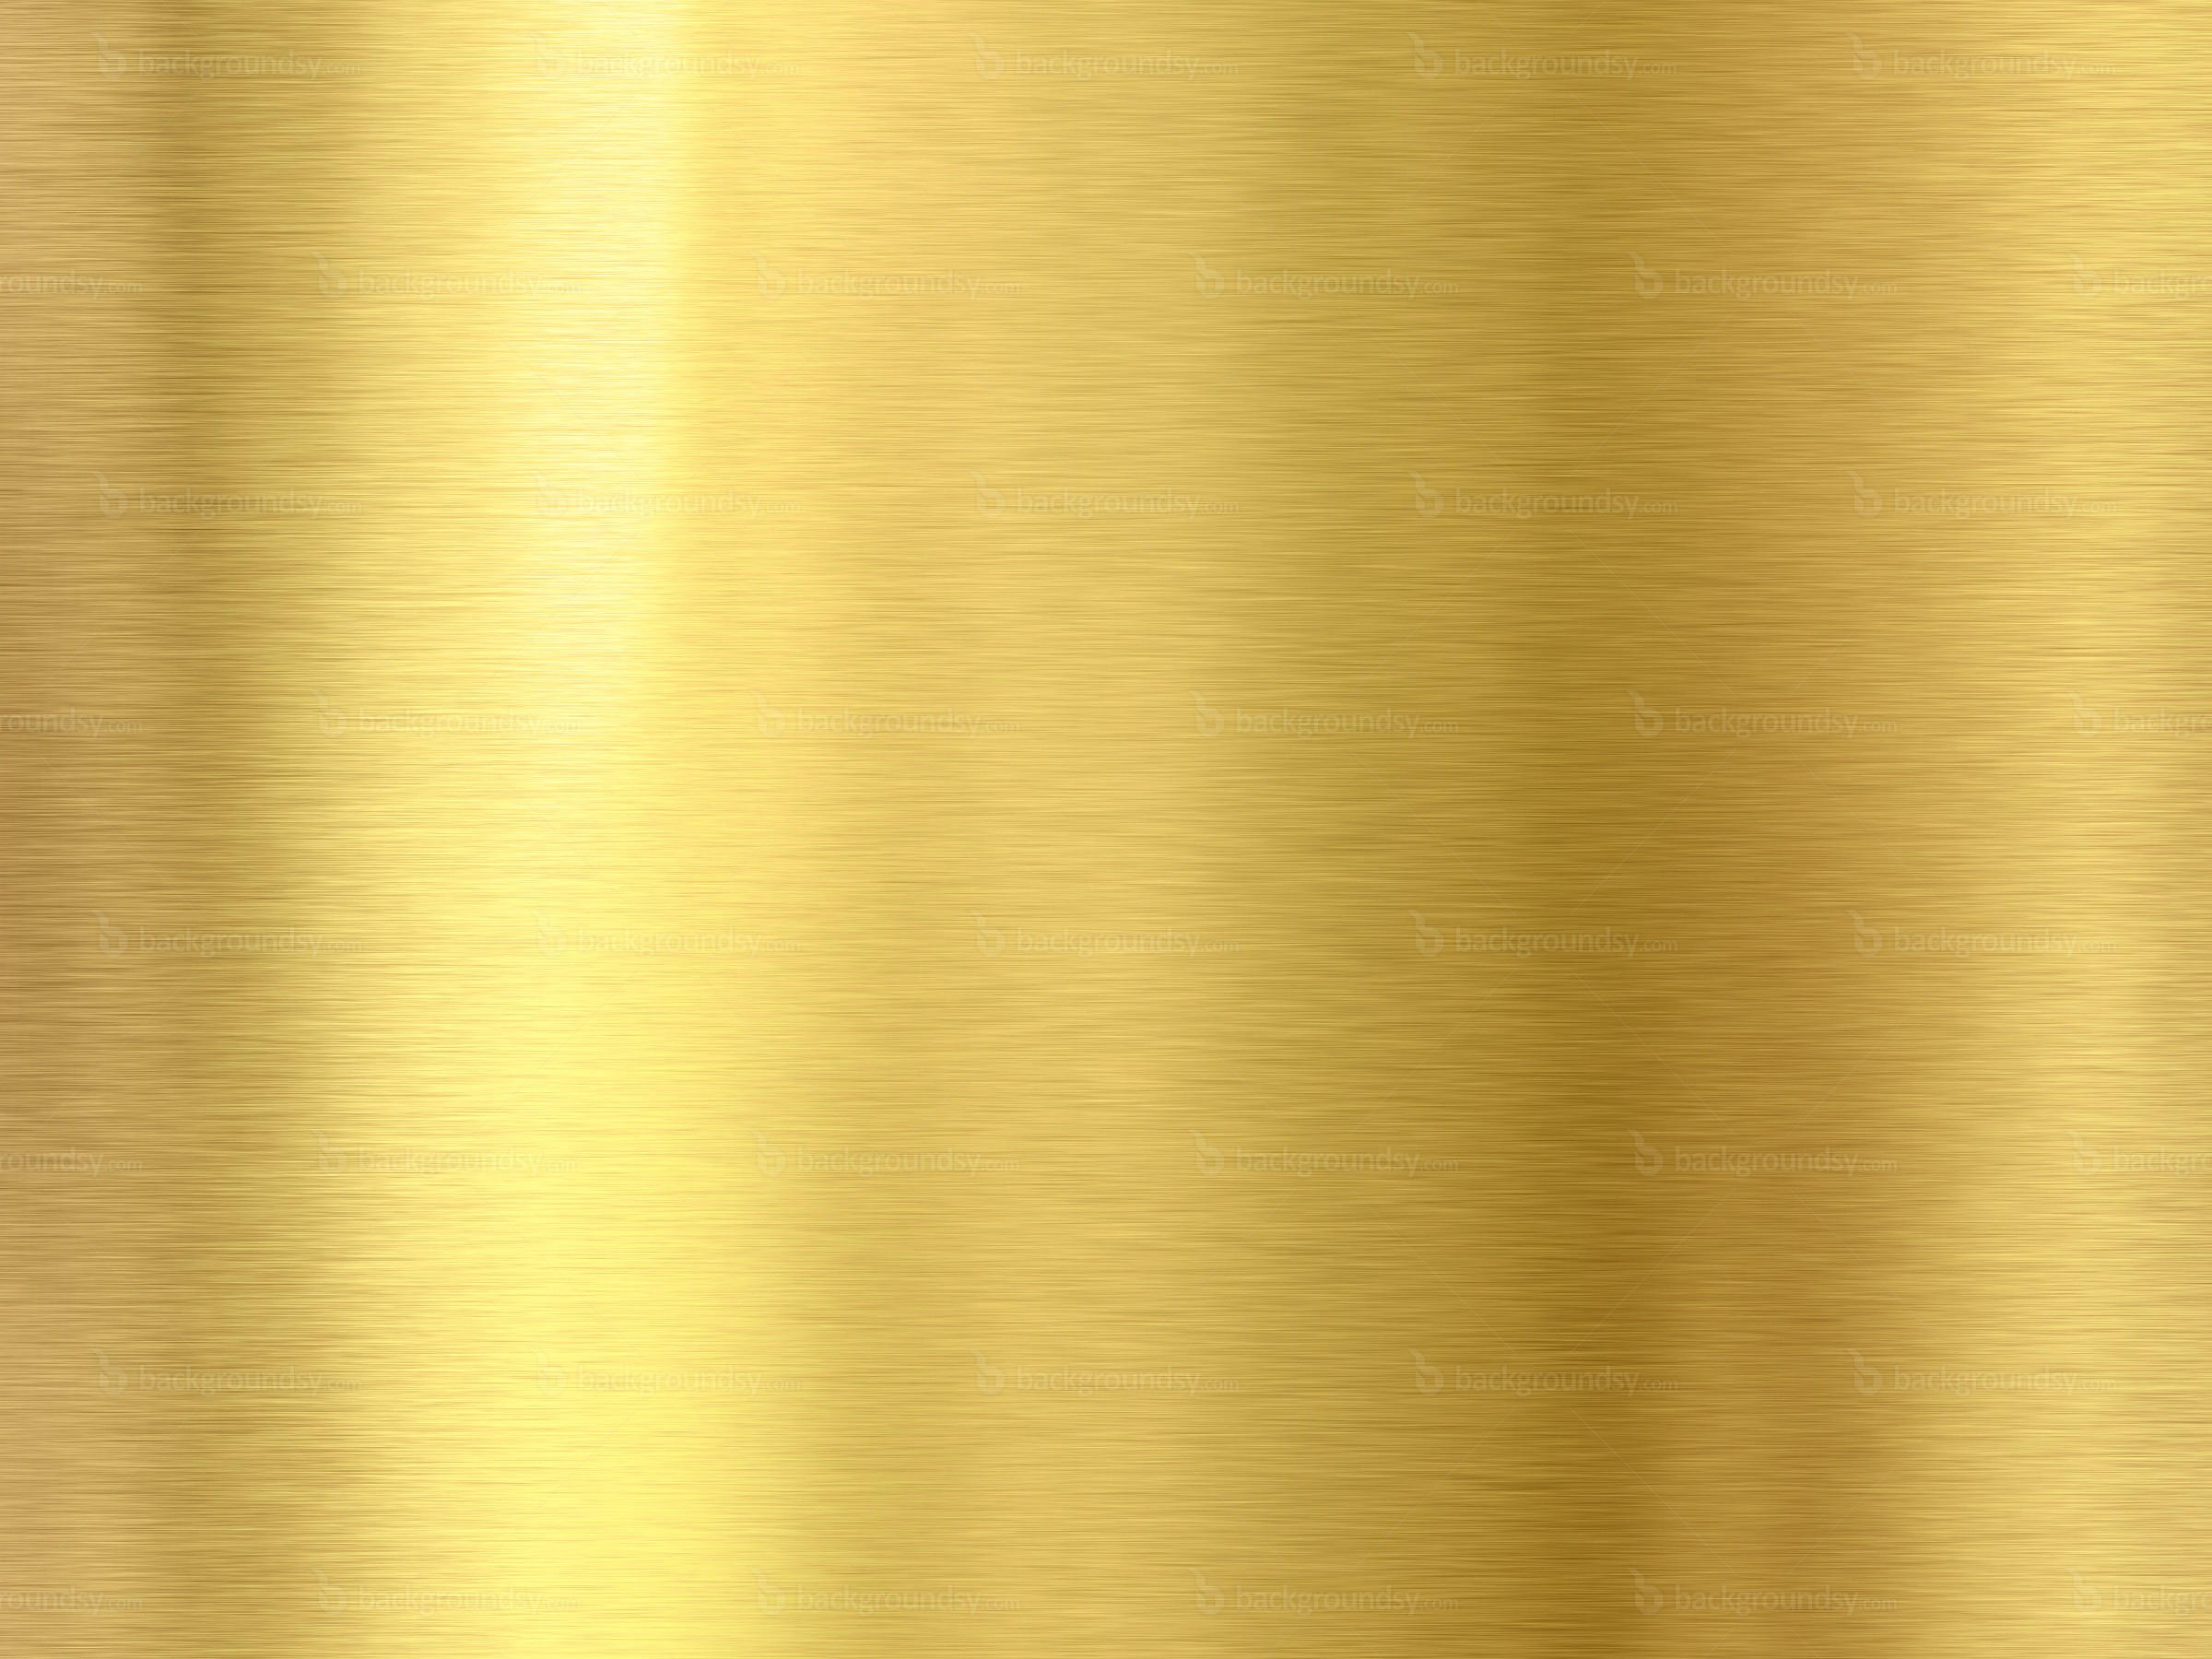 gold background  u00b7 u2460 download free hd backgrounds for